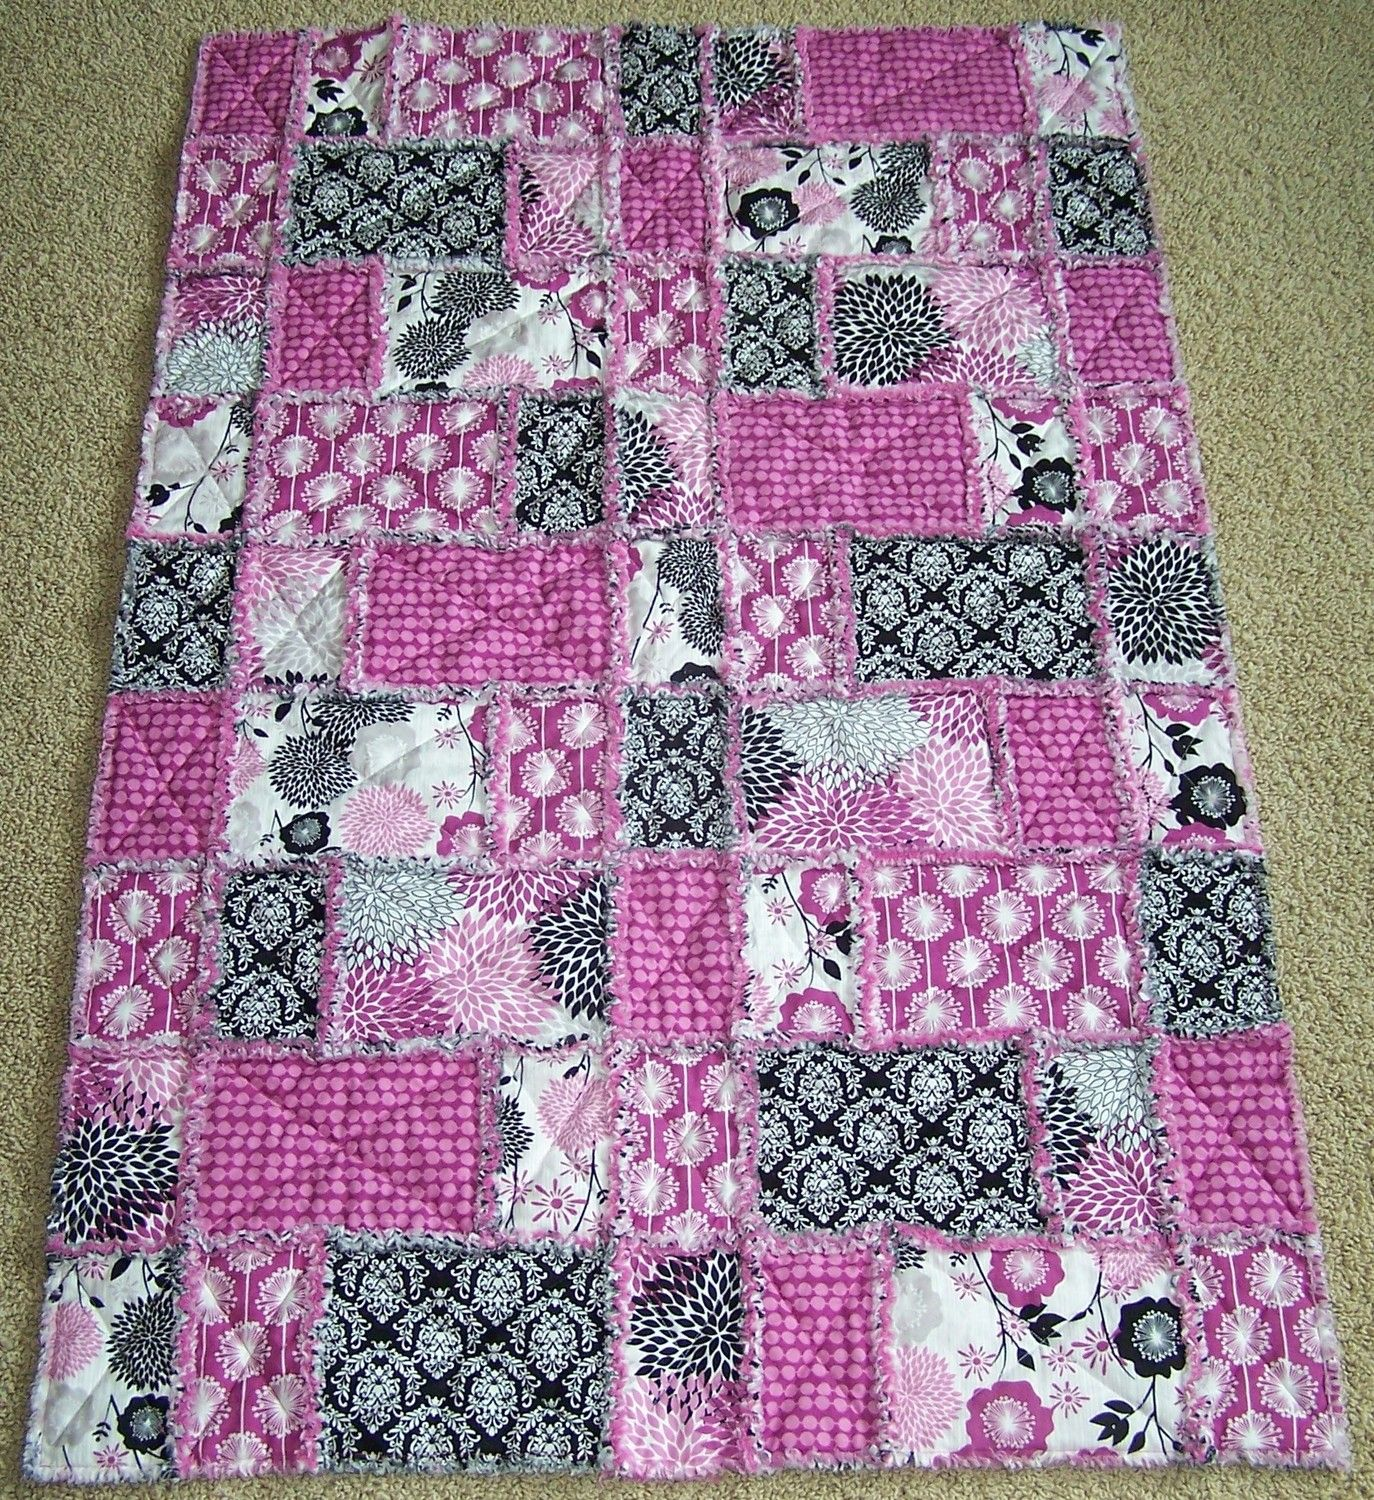 Rag Quilt Idea Love These Colors This Is Kind Of A Different